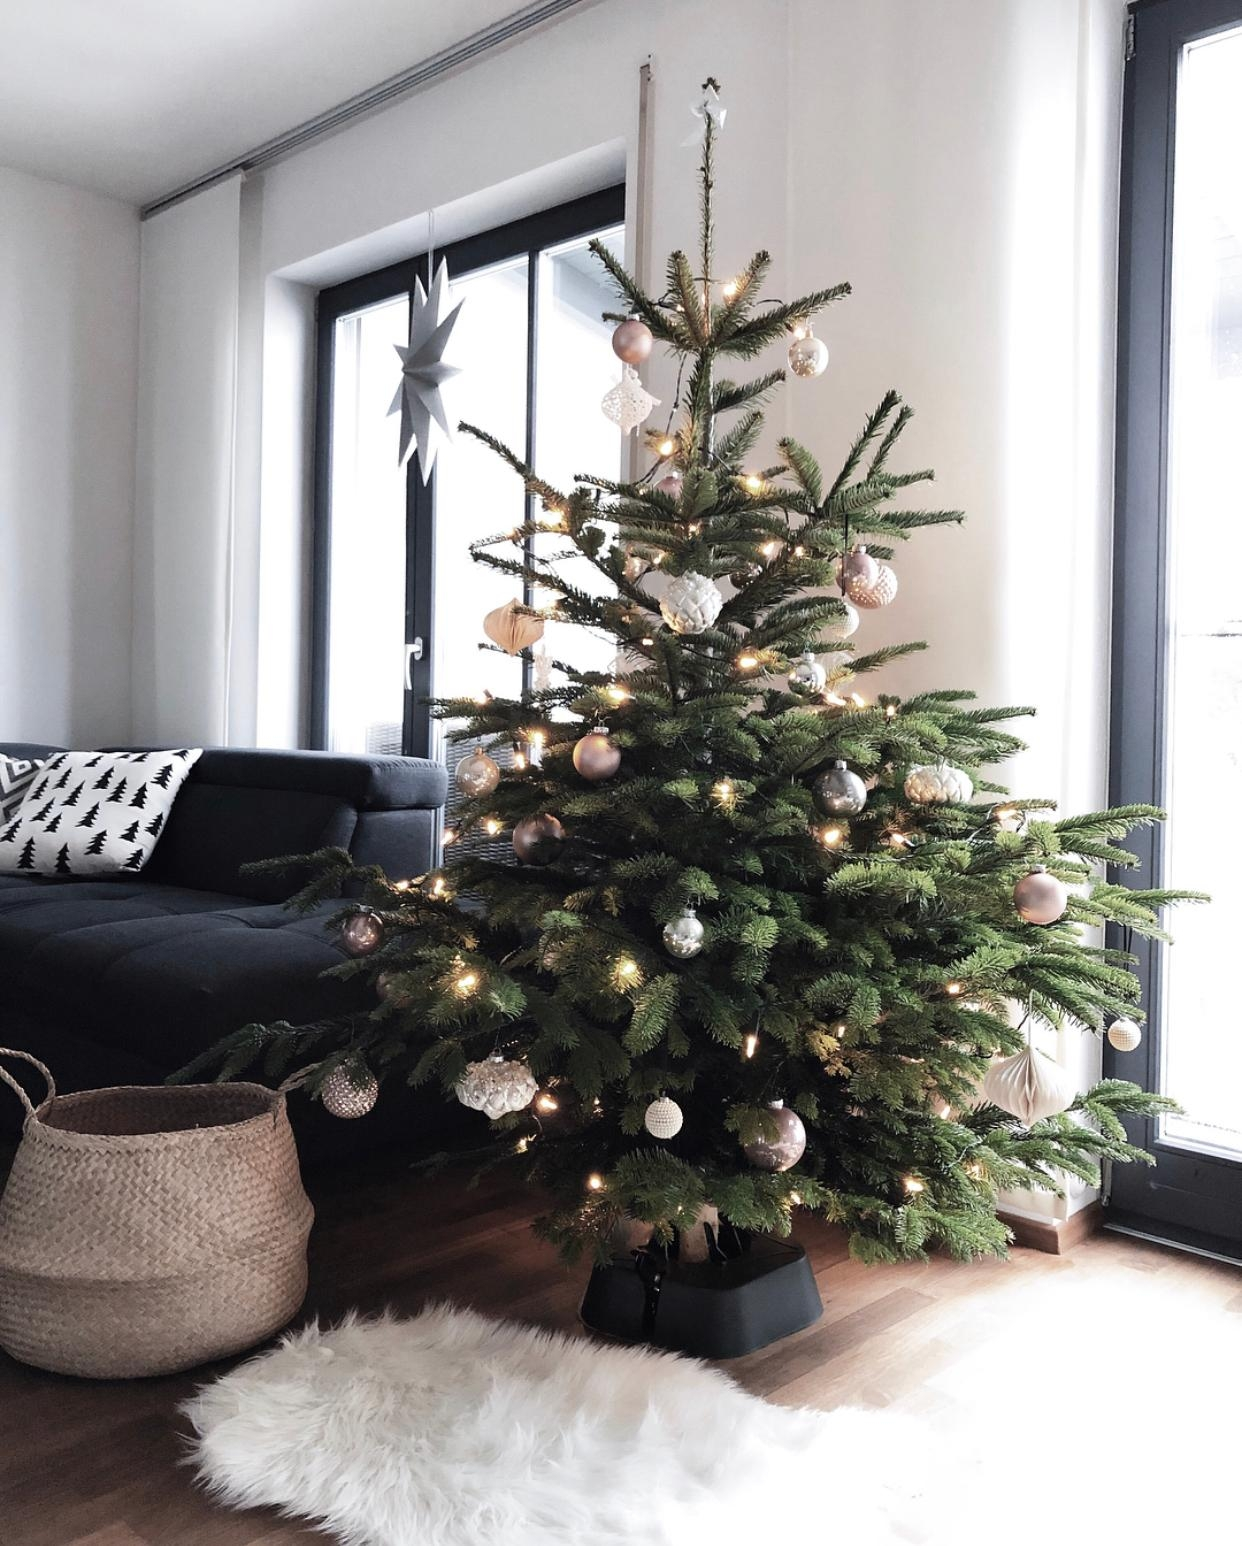 Unser weihnachtsbaum 2018  tanne xmas christmastree  5cd36d93 3b53 4292 b13e b56a9c1e5bf4